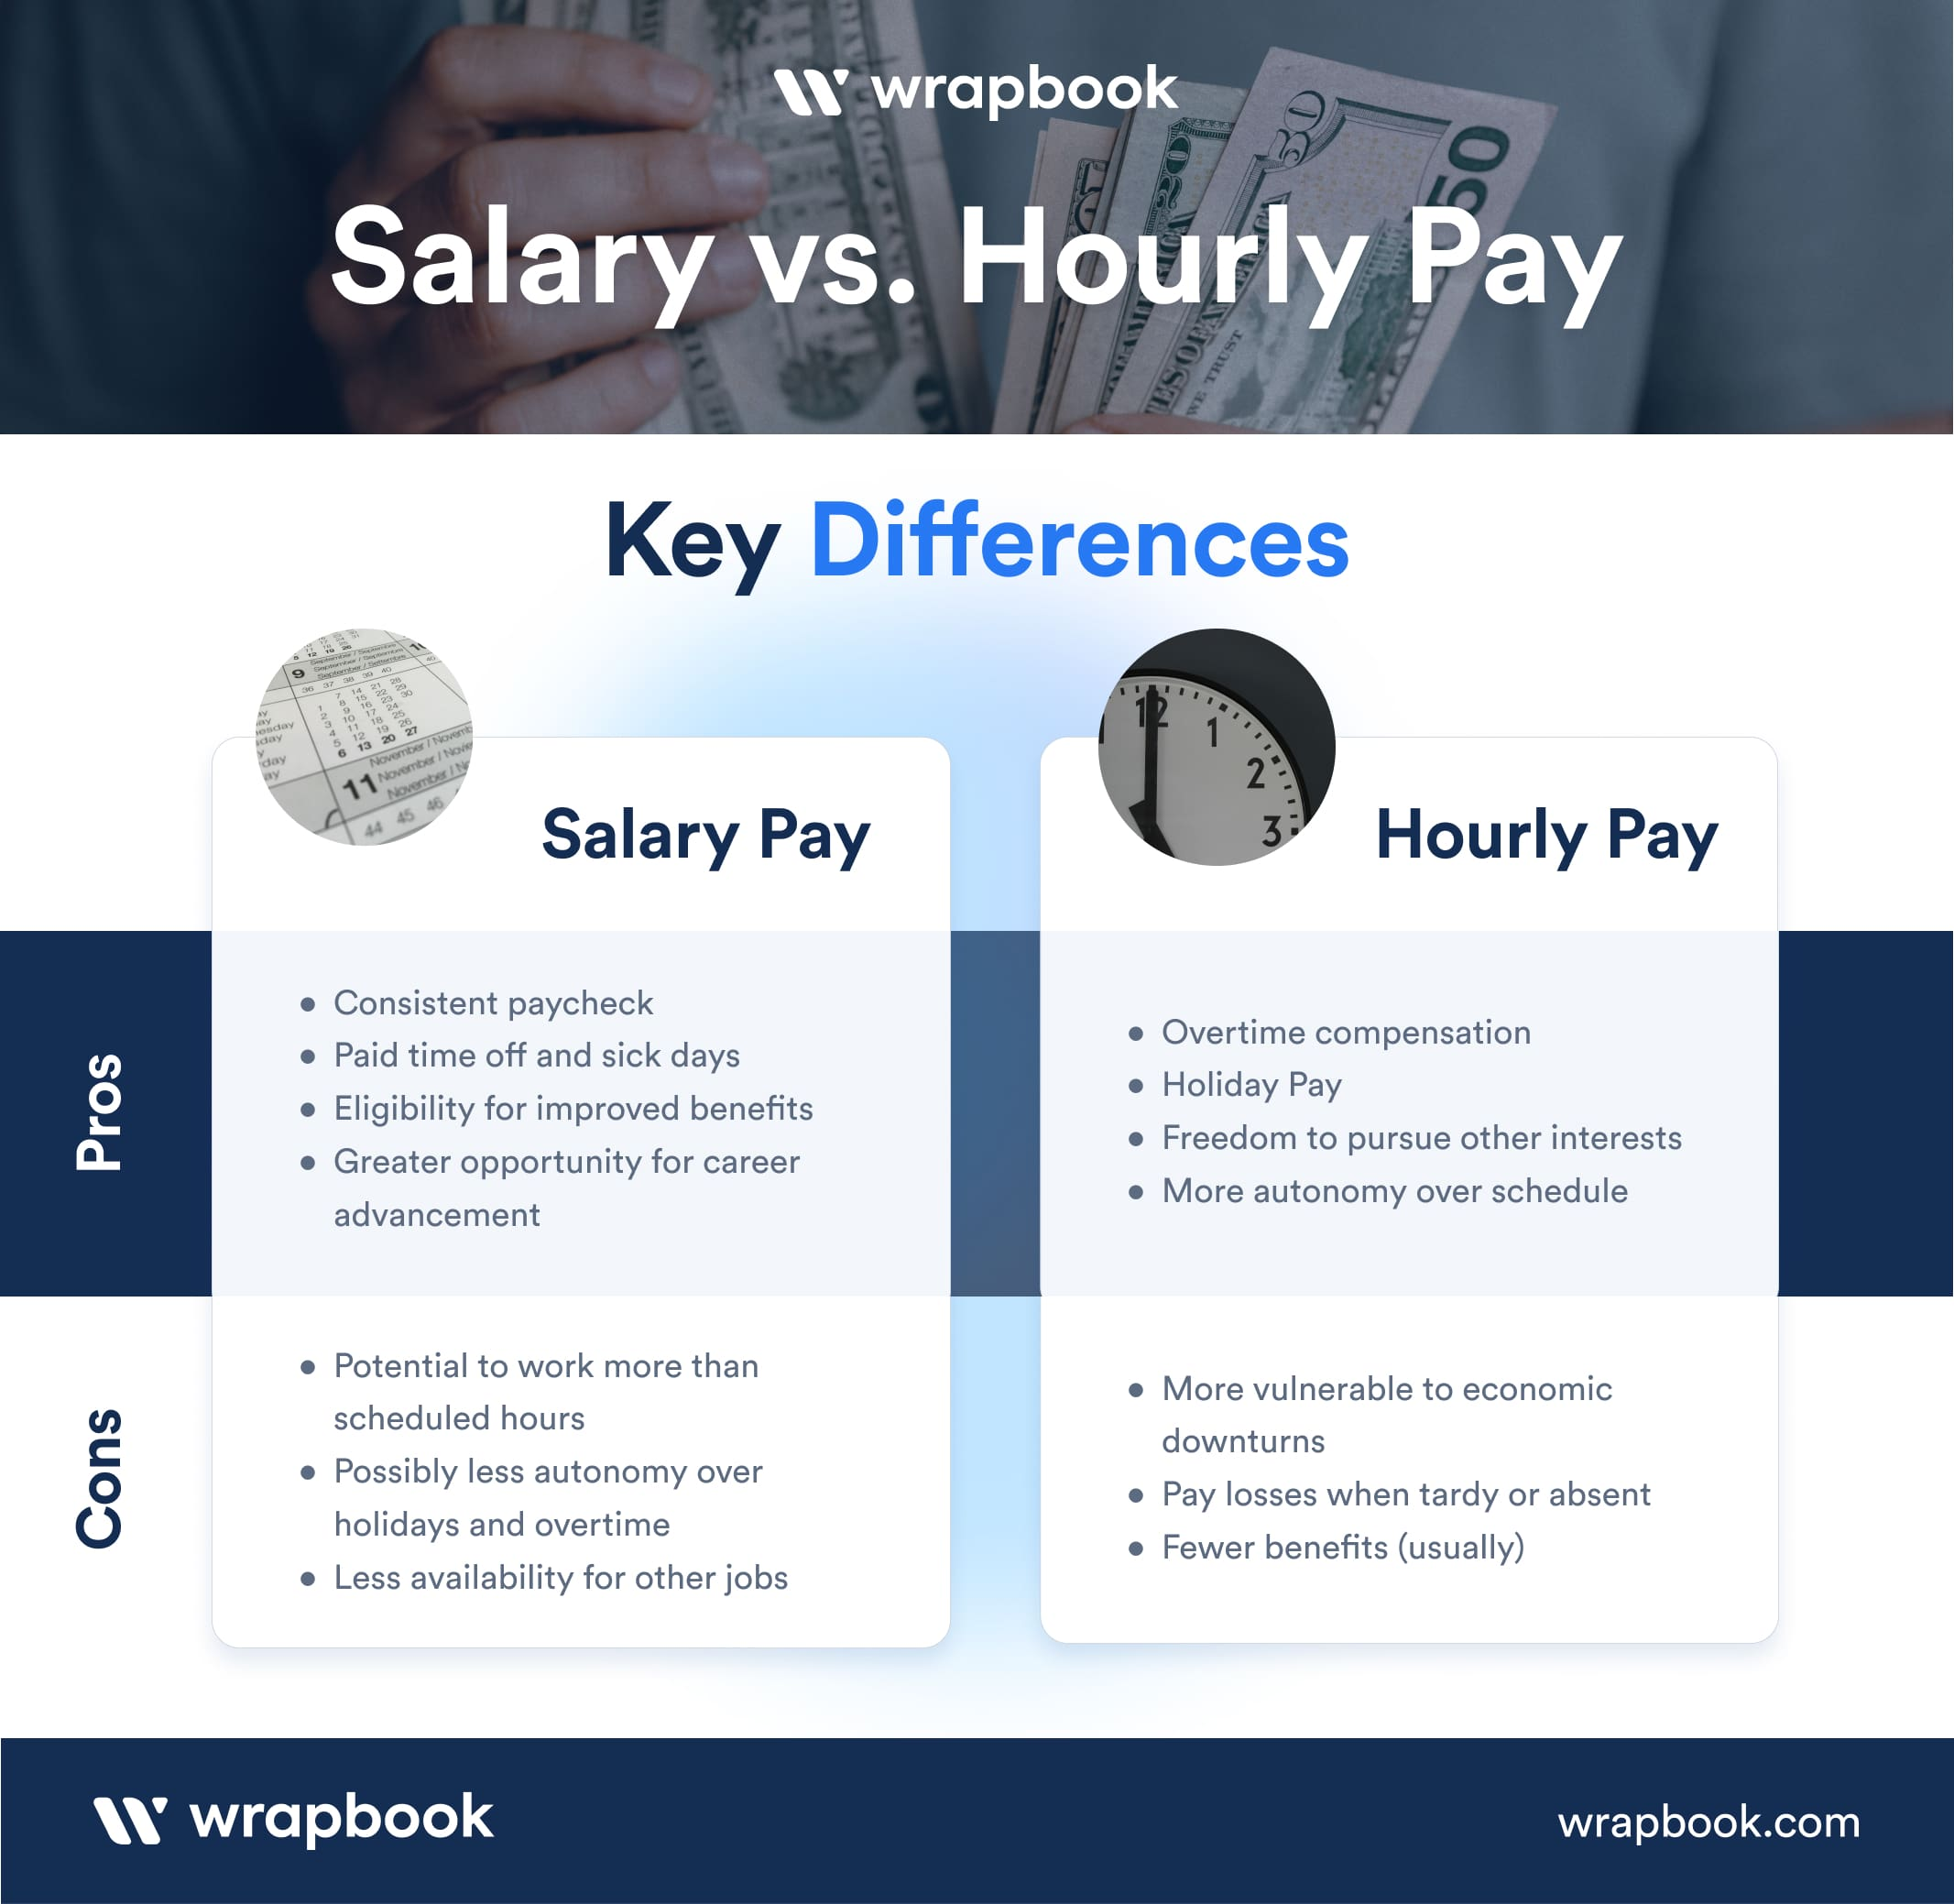 Salary vs Hourly - Pros and Cons - Infographic - Wrapbook